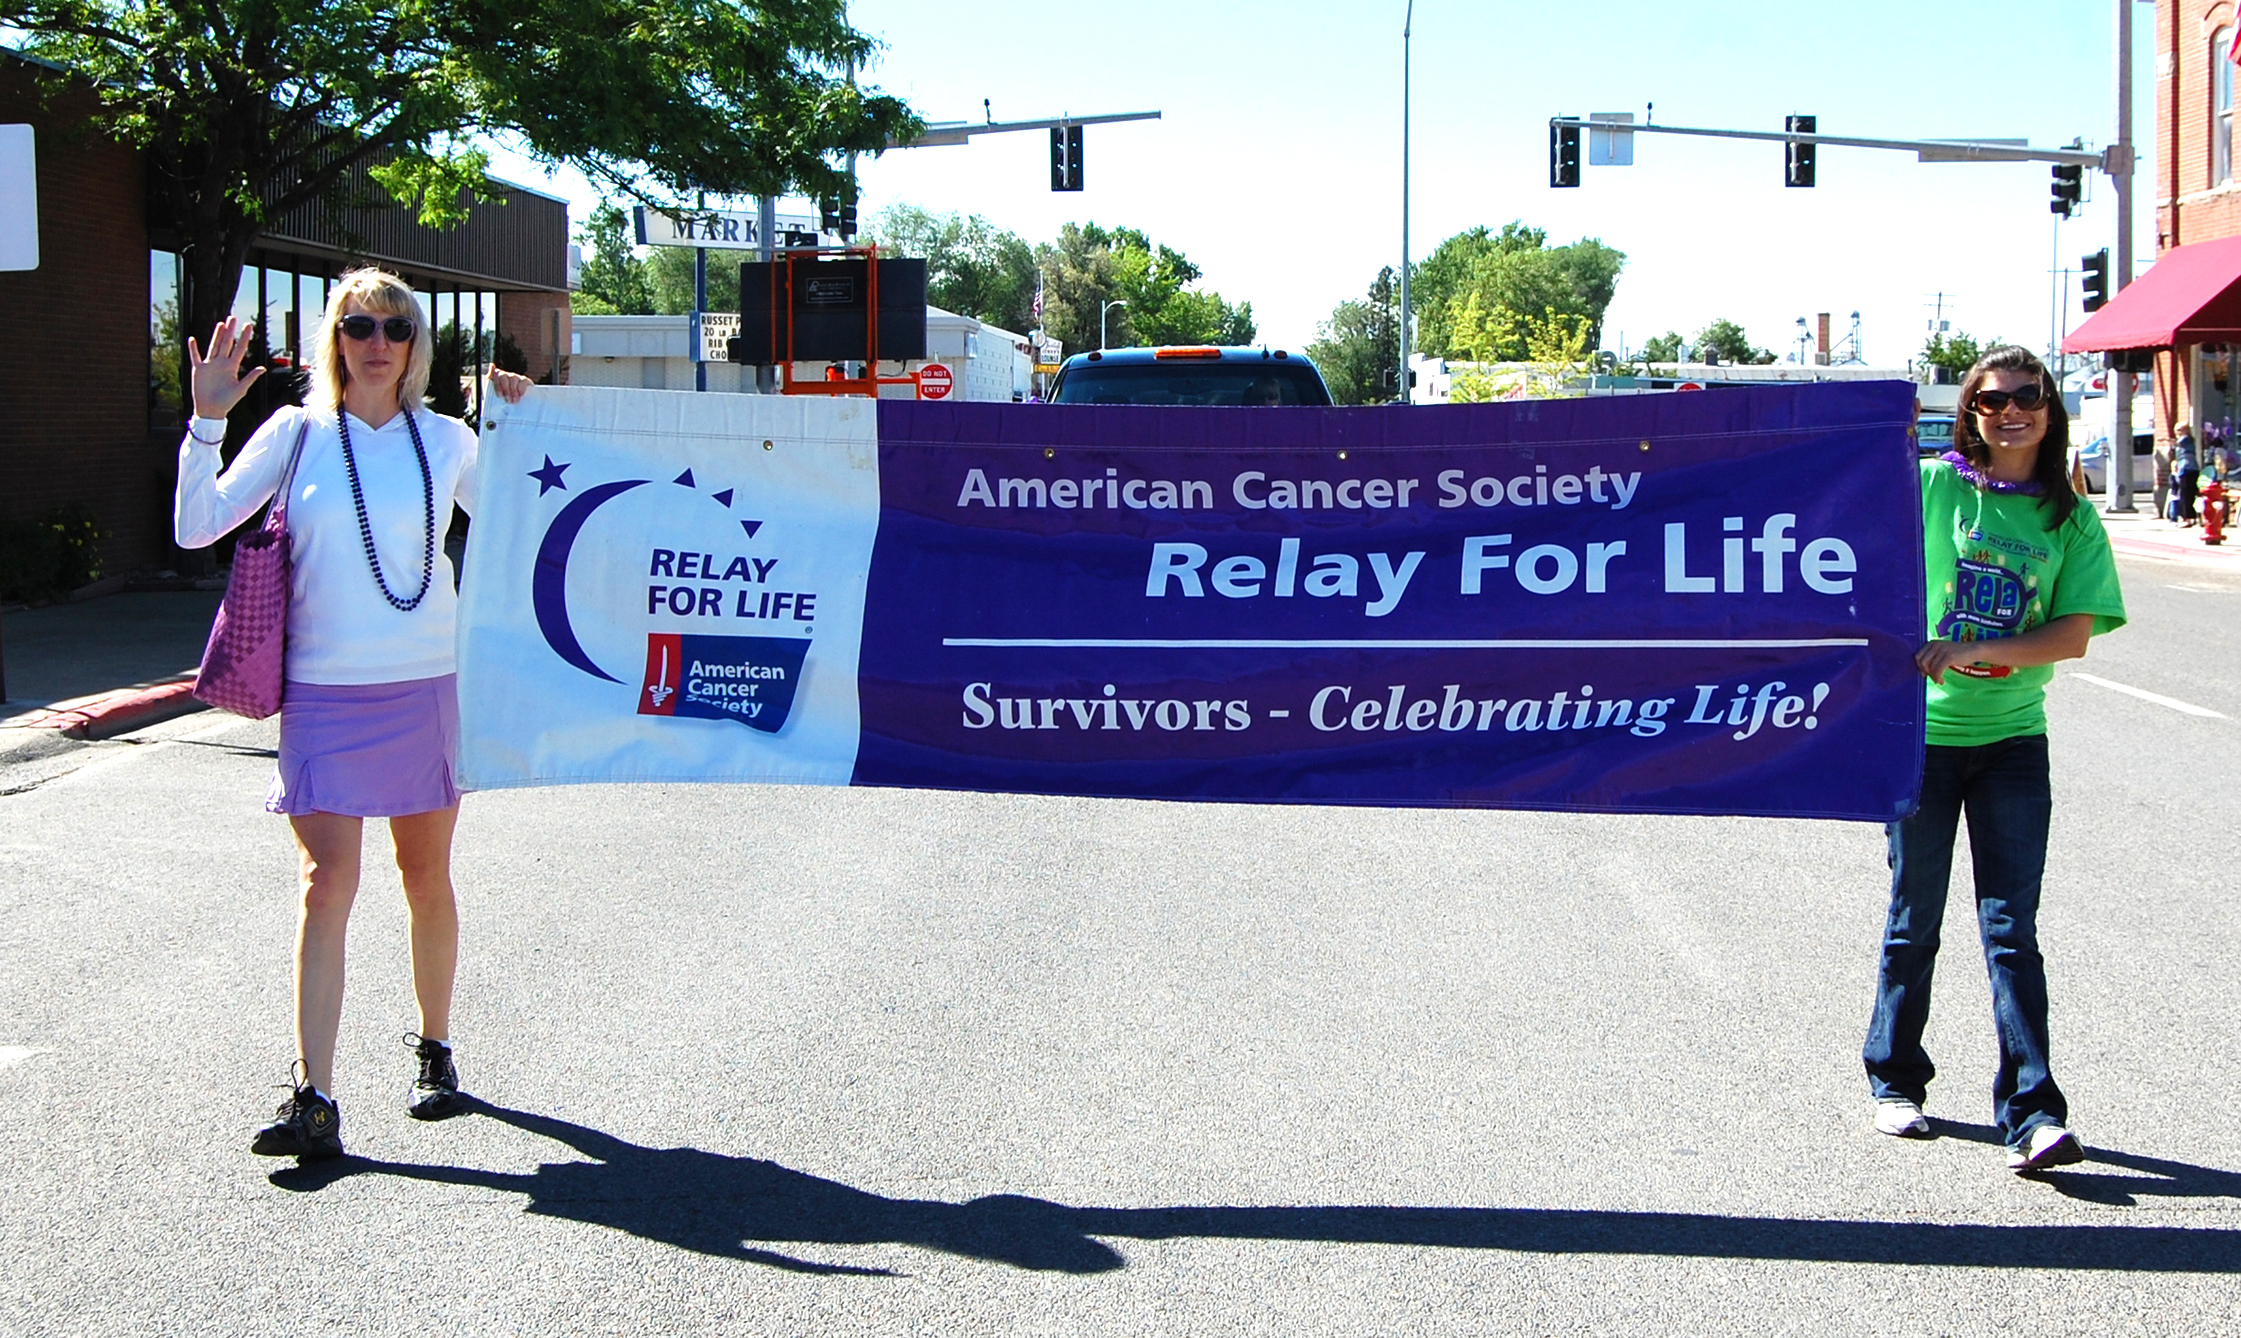 relay for life symbol